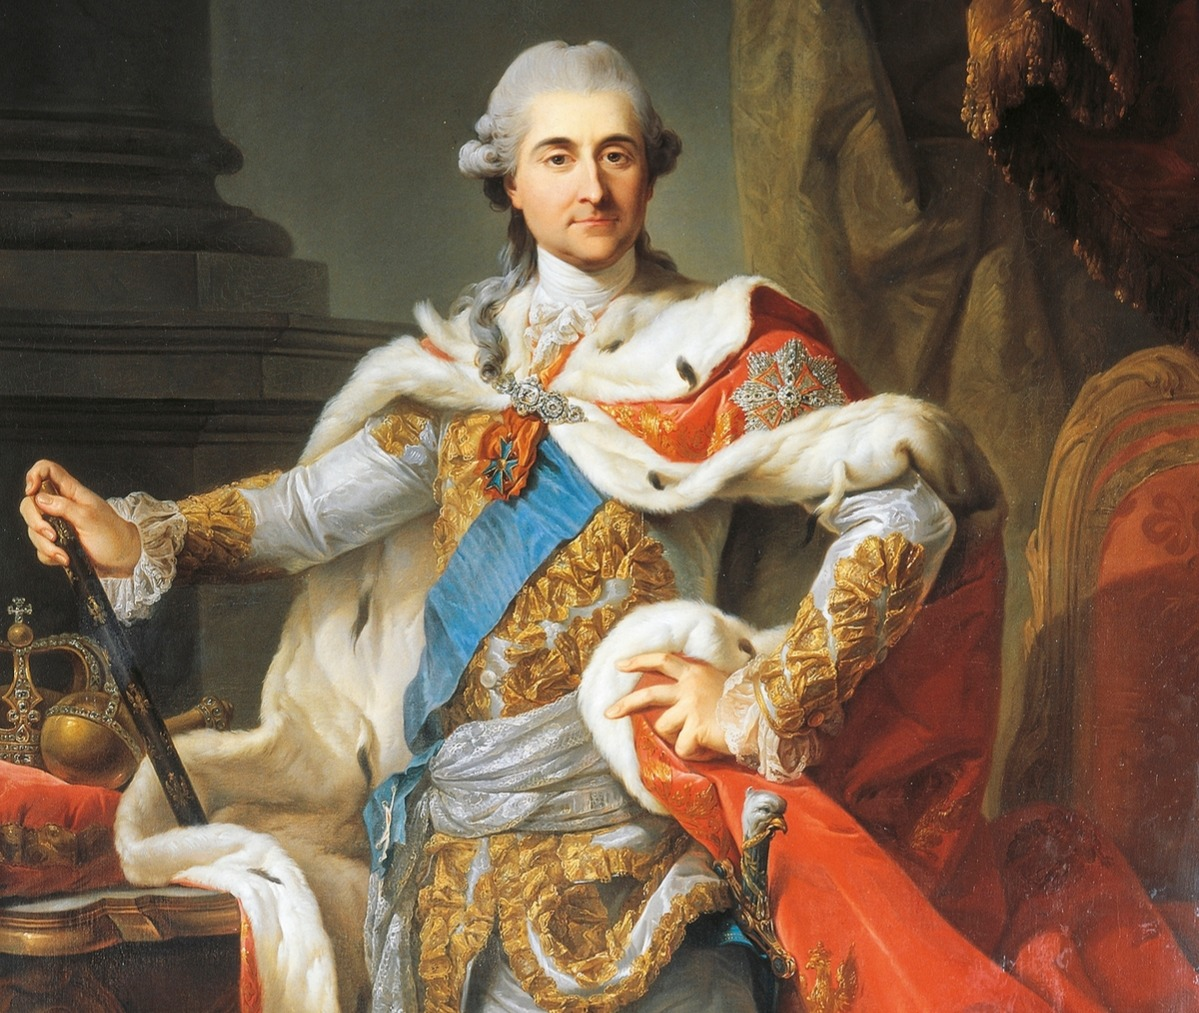 Portrait of Stanisław August Poniatowski King of Poland and lover of Catherine the Great